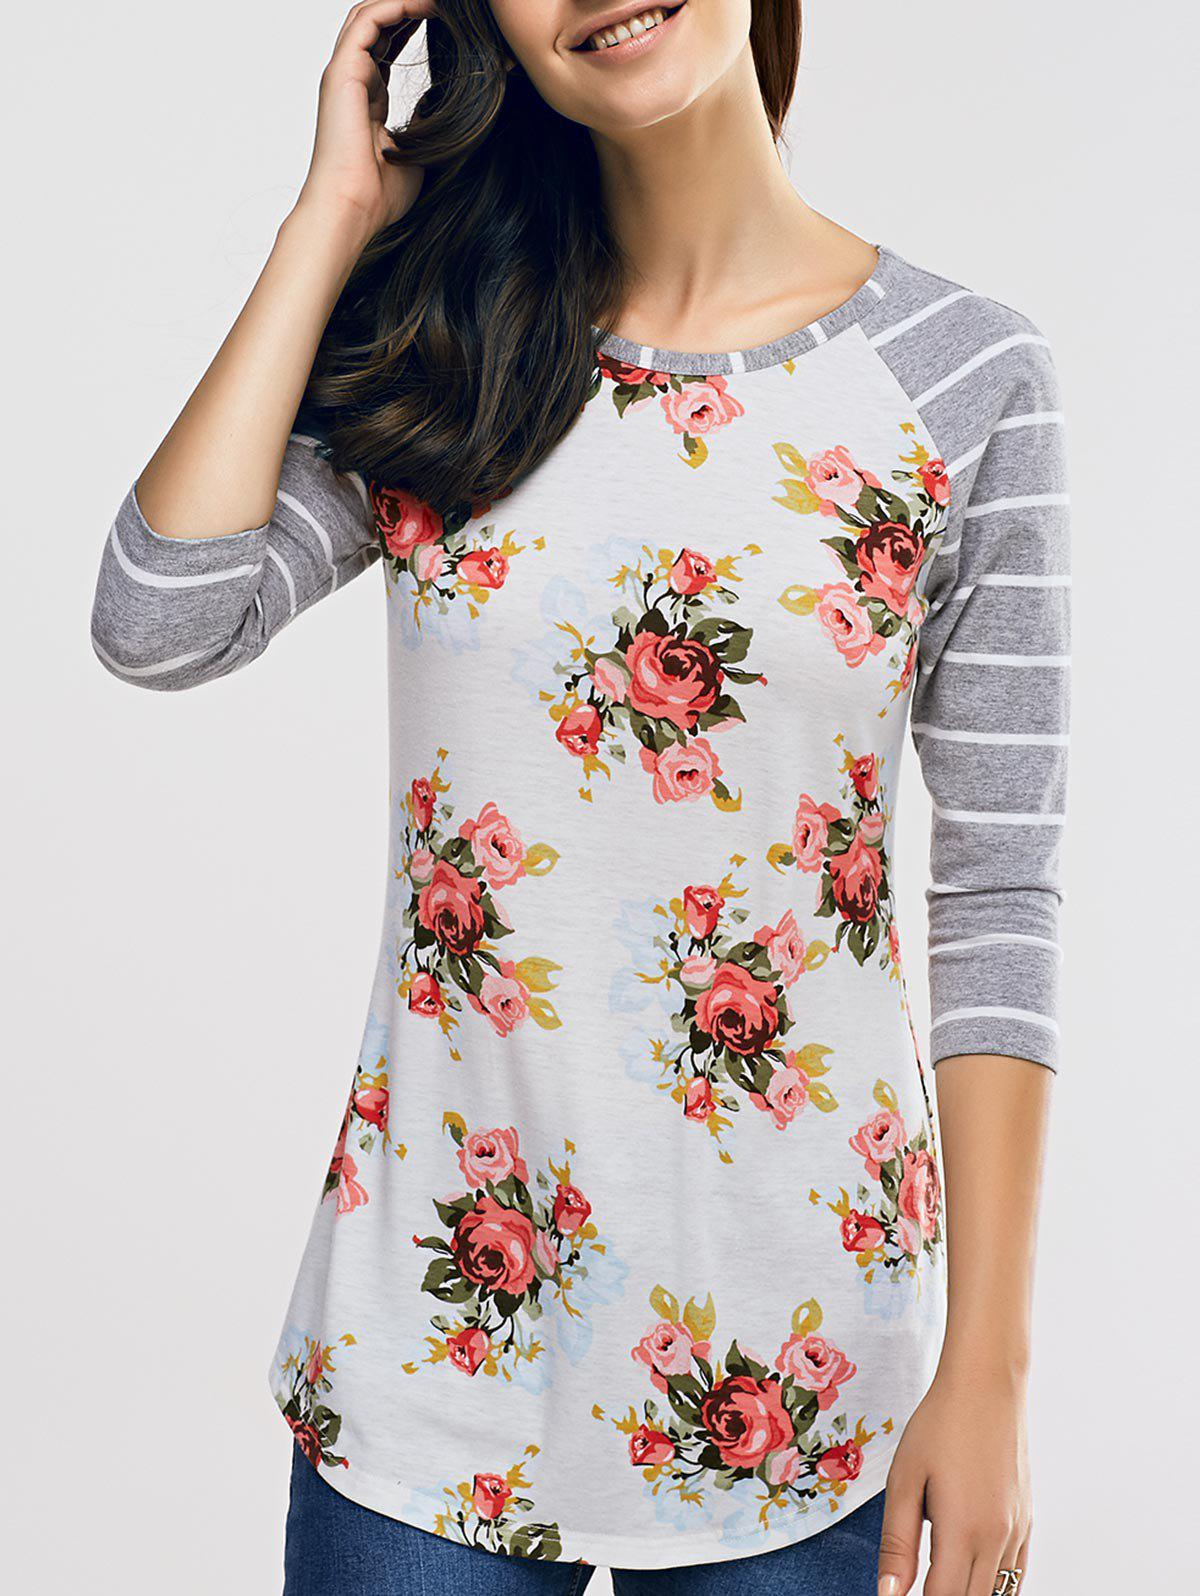 Raglan Sleeve Floral and Striped T-Shirt